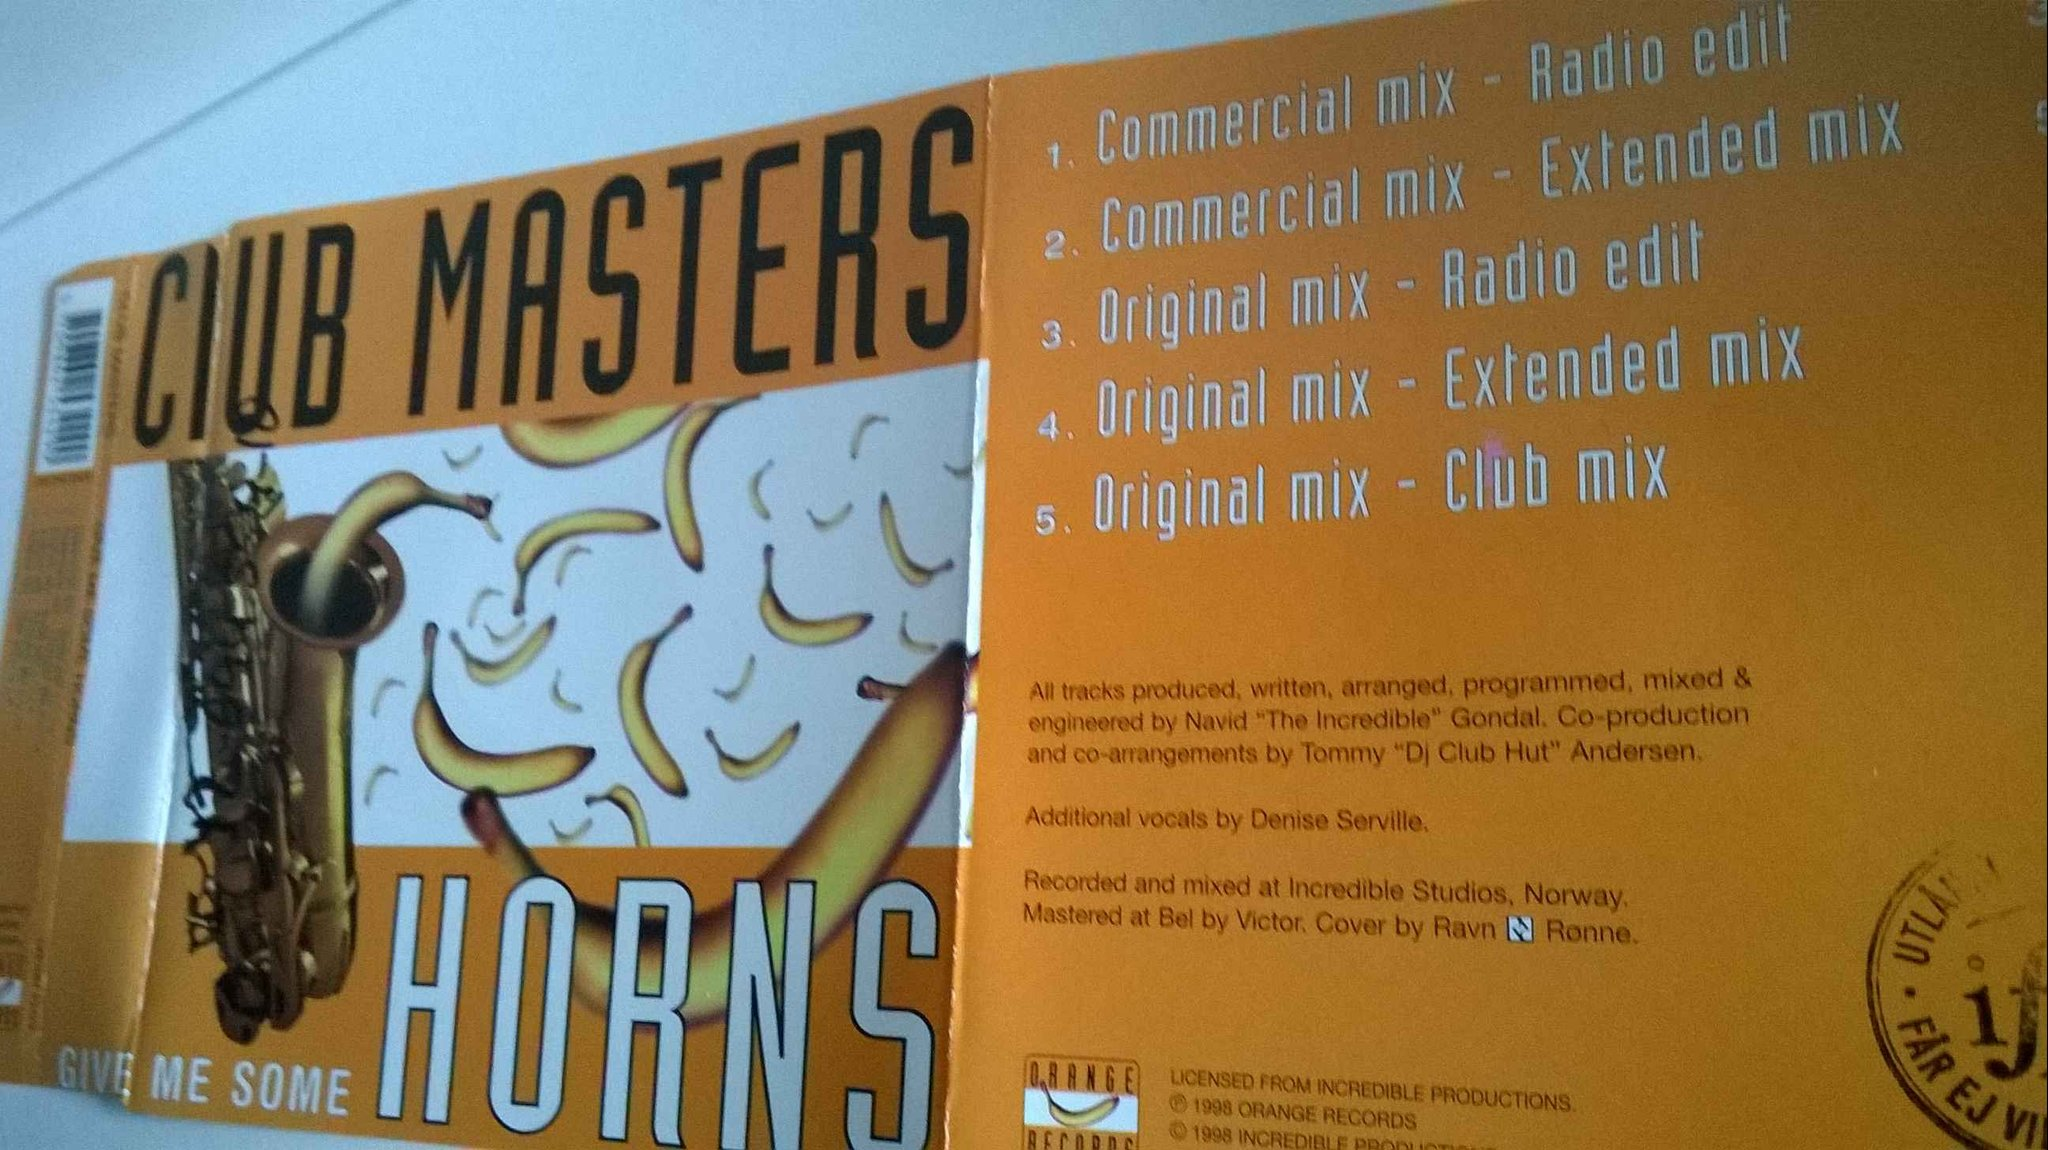 Club Masters - Give me come horns, single CD, promo